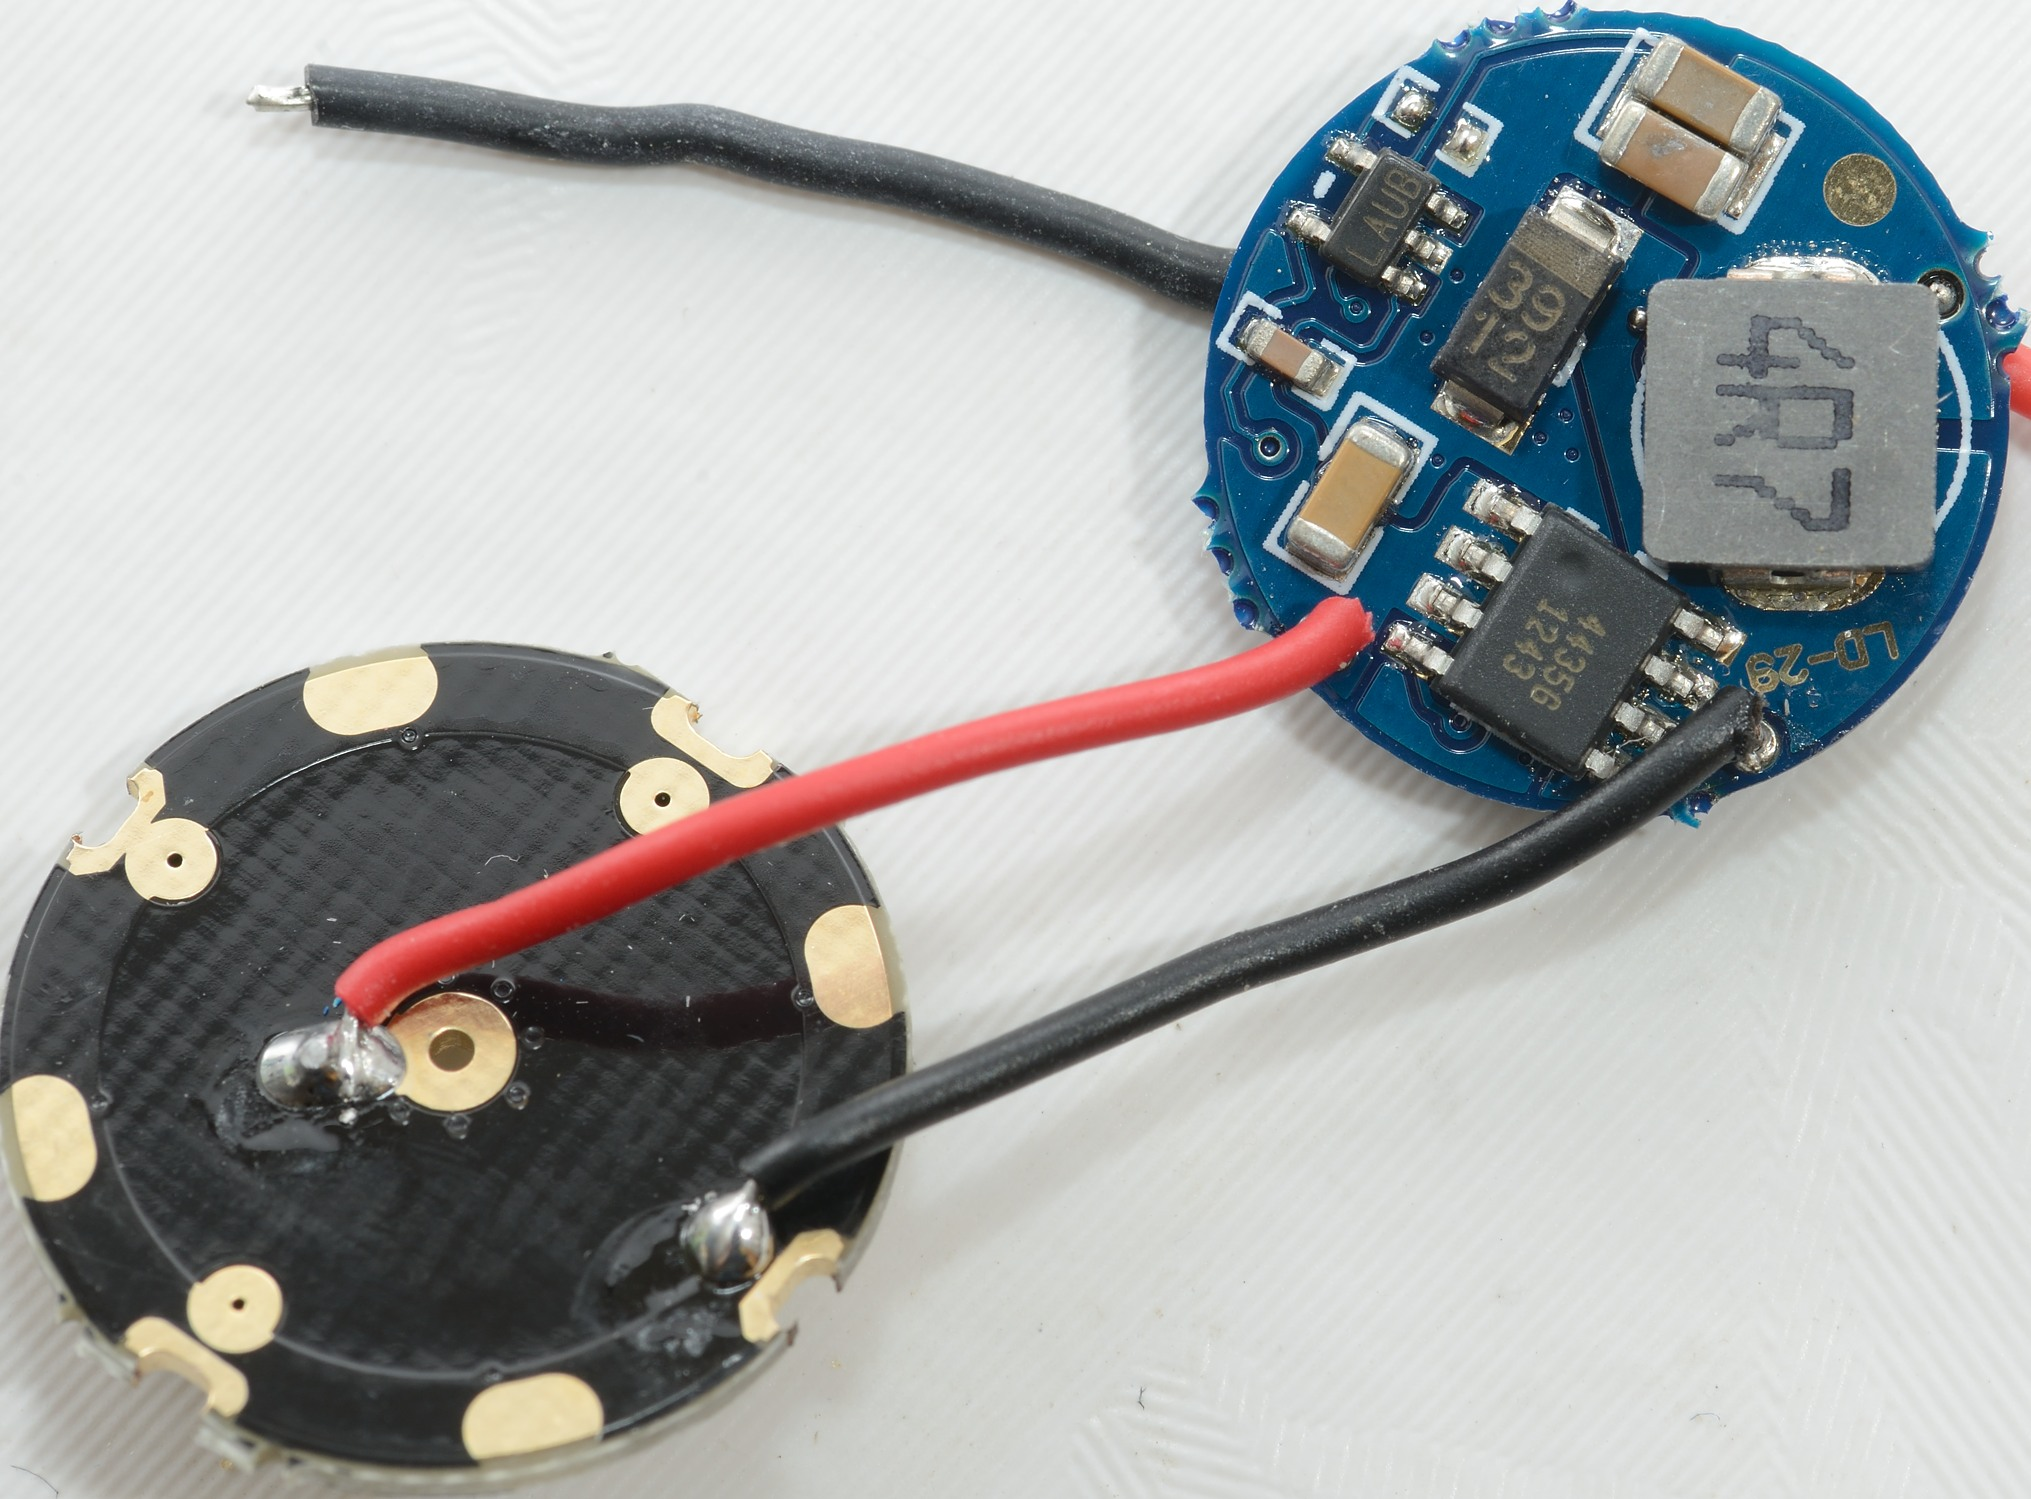 Test Of 1 2 Lithium Group 3 5 Mode 28a Led Ld 29 Efficient Driver Works With Single Aa Cell Is From Fasttechcom